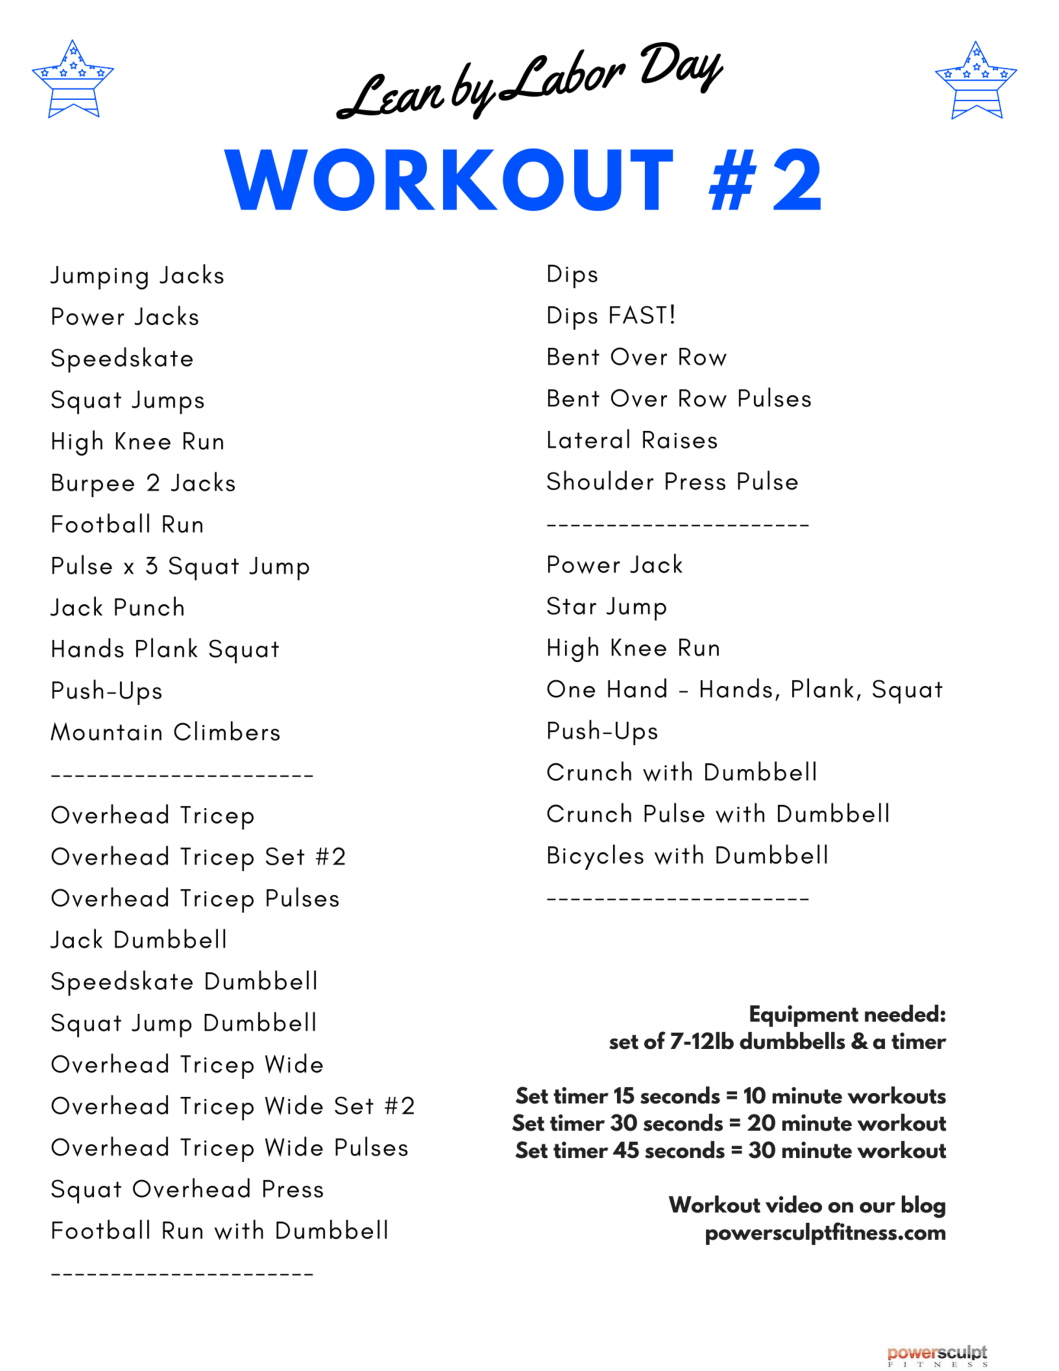 LEAN BY LABOR DAY WORKOUTS